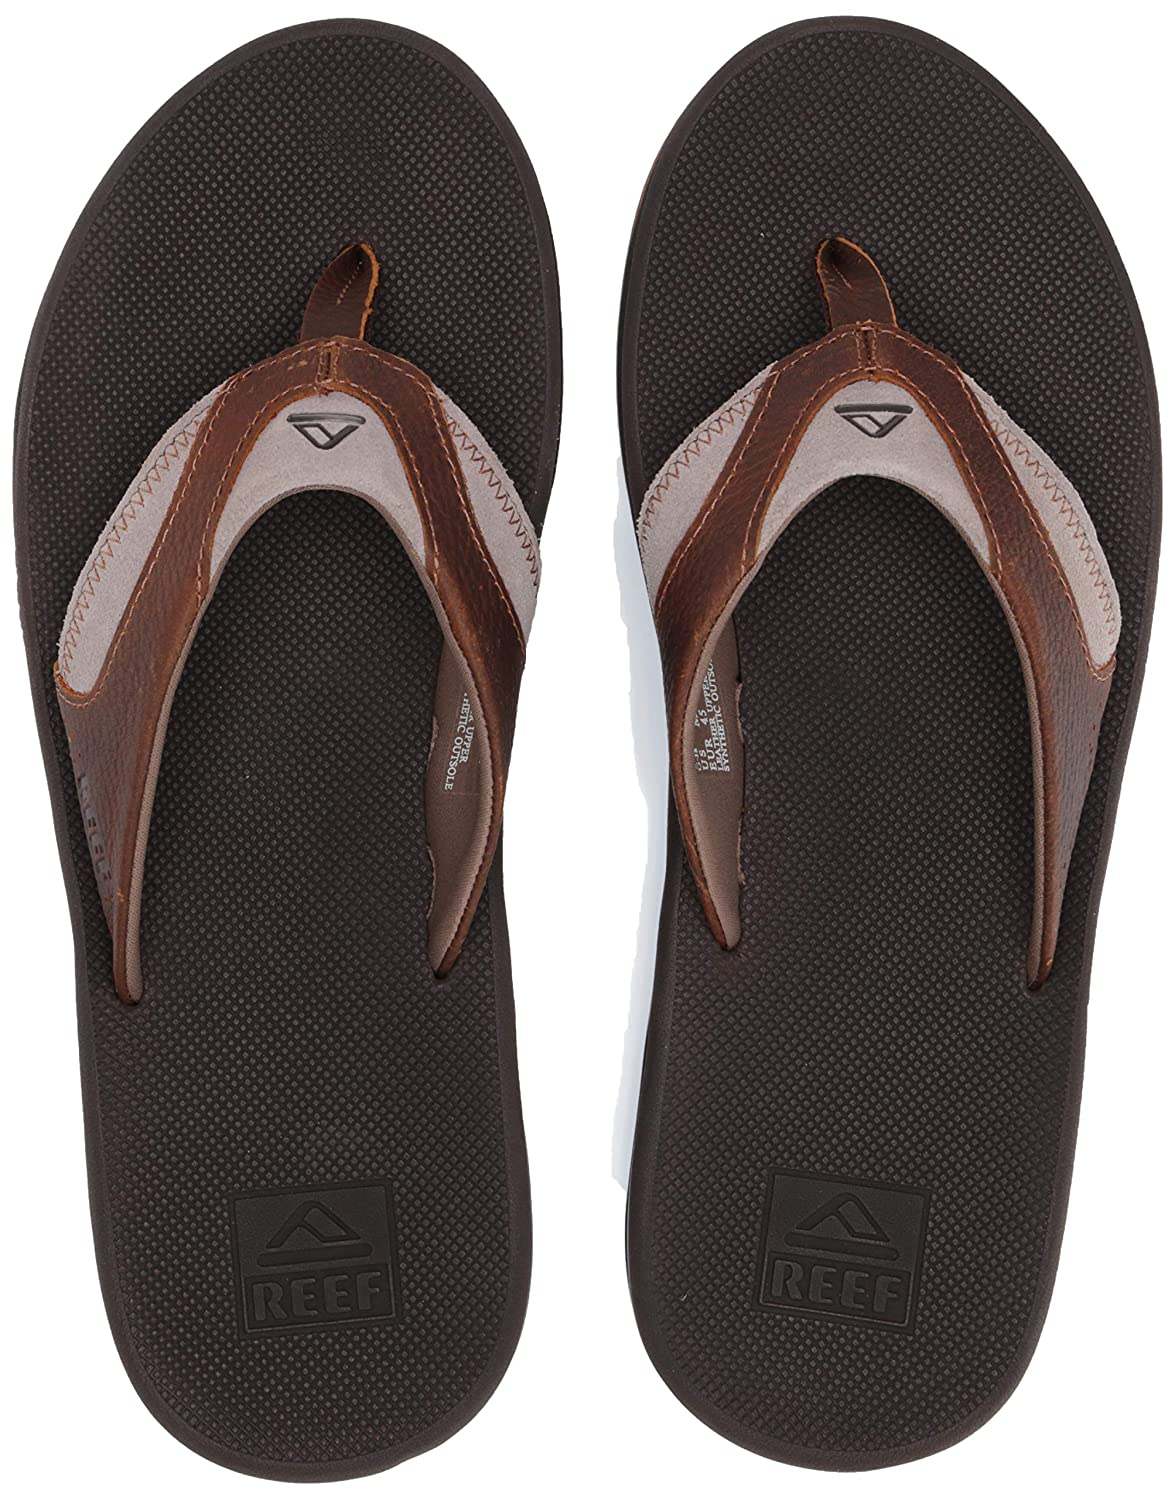 Reef Leather Fanning, Chanclas para Hombre, Marrón (Bro/Brown 4 Br4), 46 EU